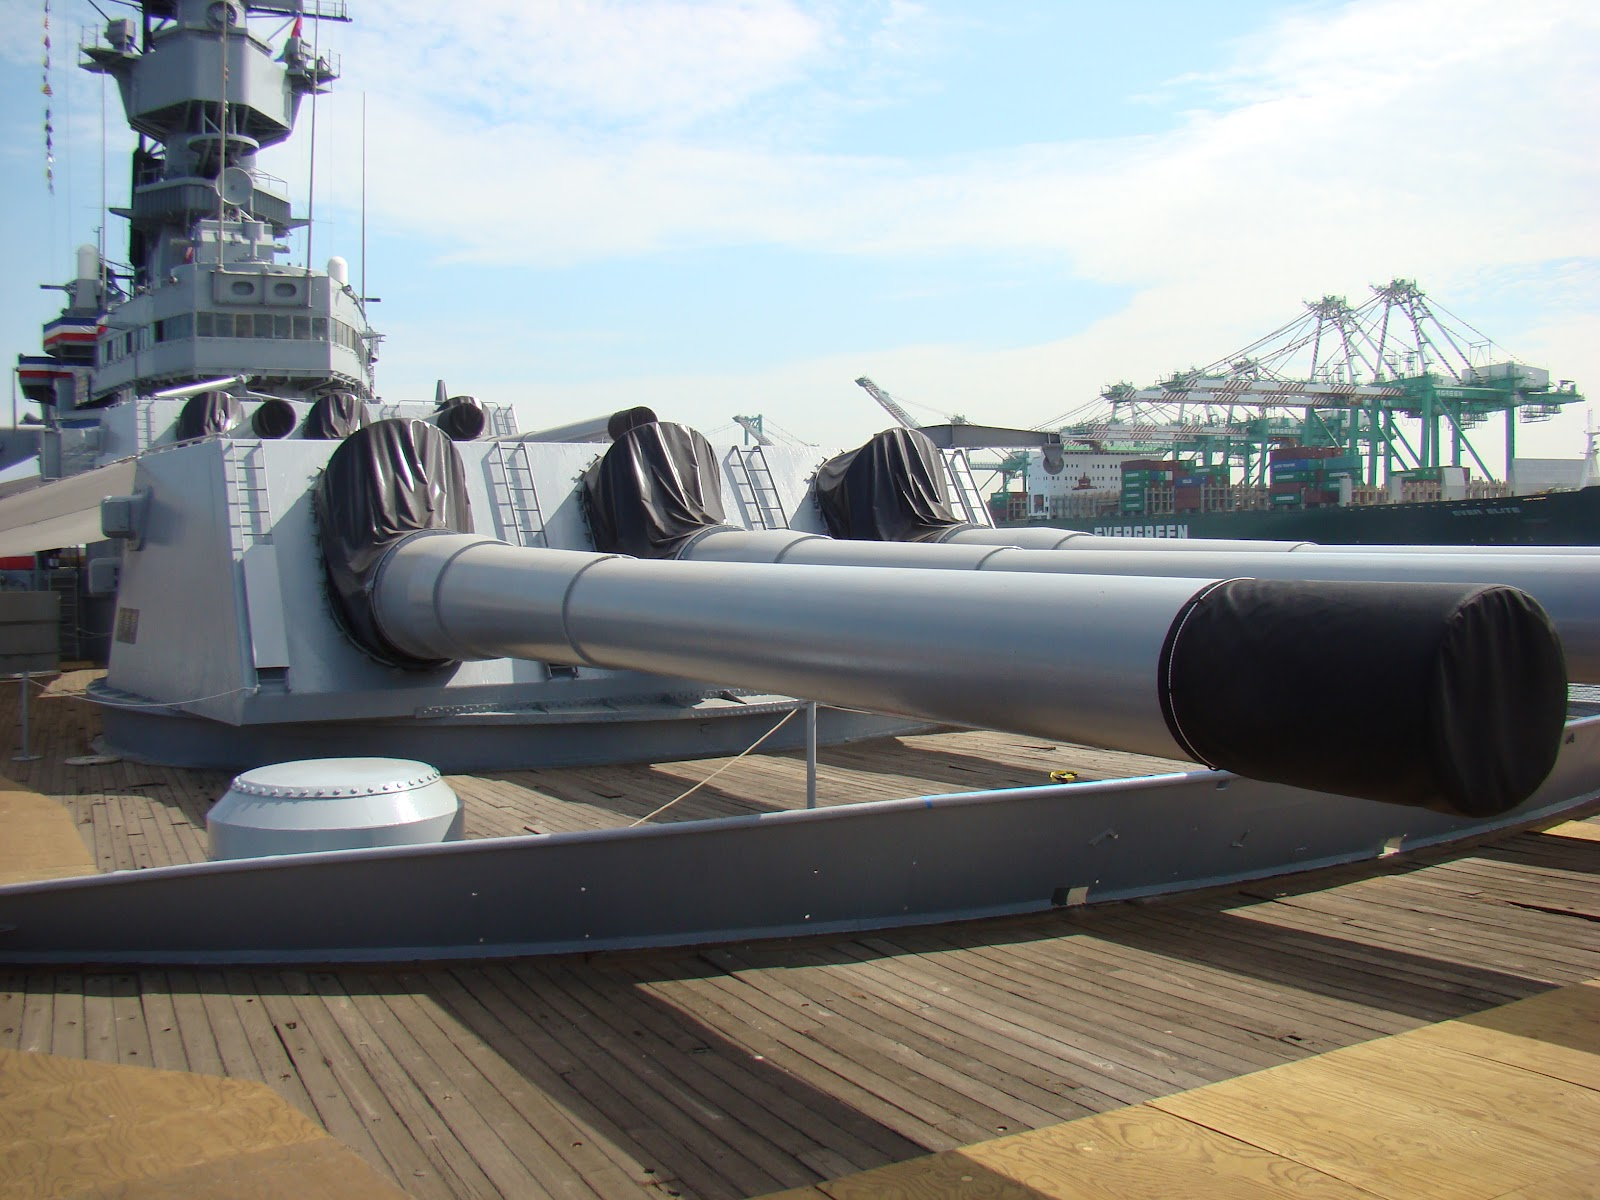 Corner of a Foreign Field: A visit to the USS Iowa Battleship